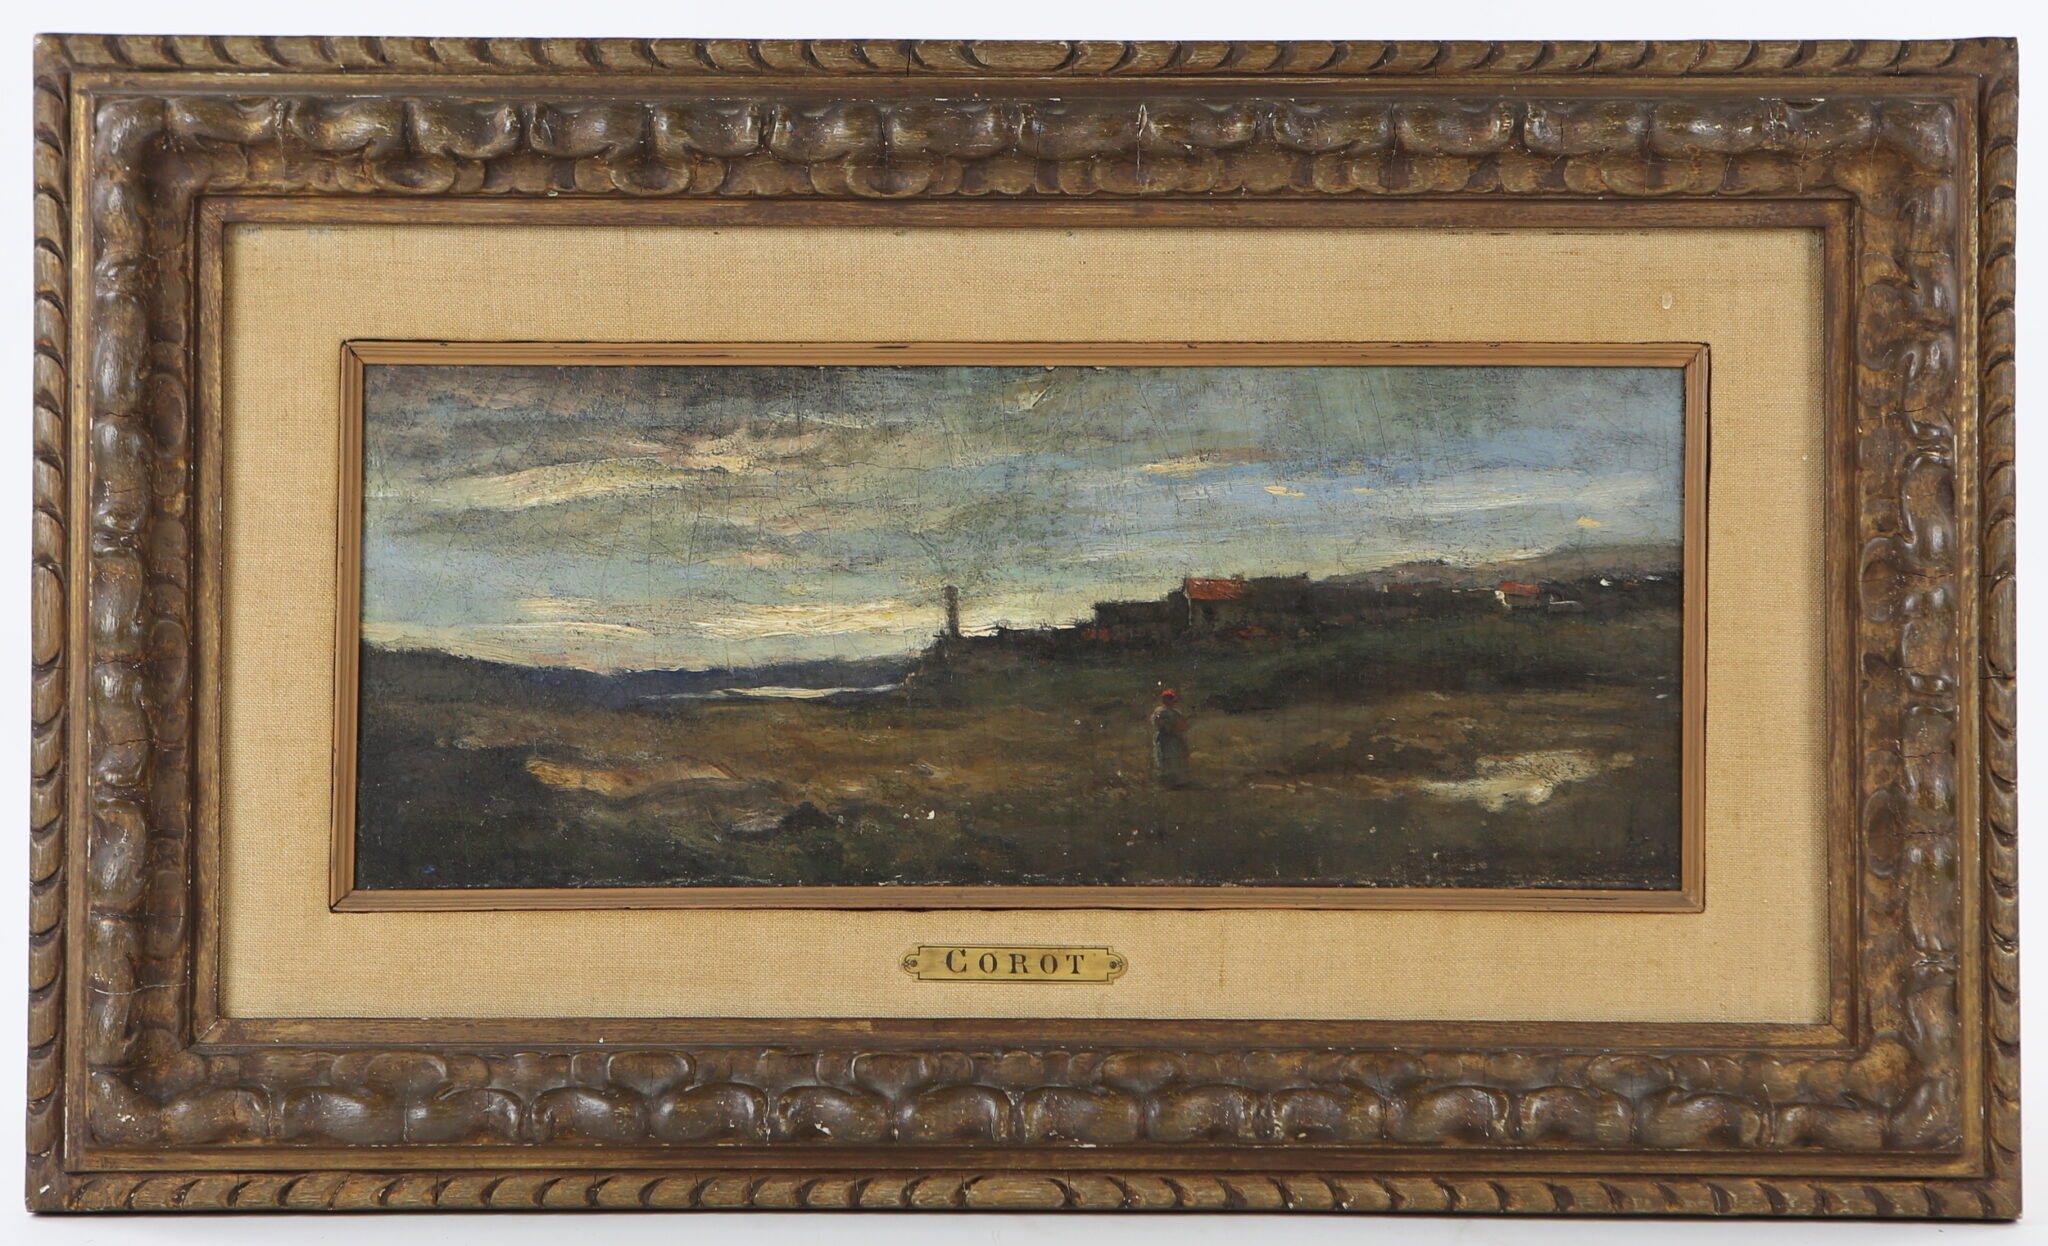 """SOUVENIR DU PHARE DE CAYEAUX"" BY COROT 